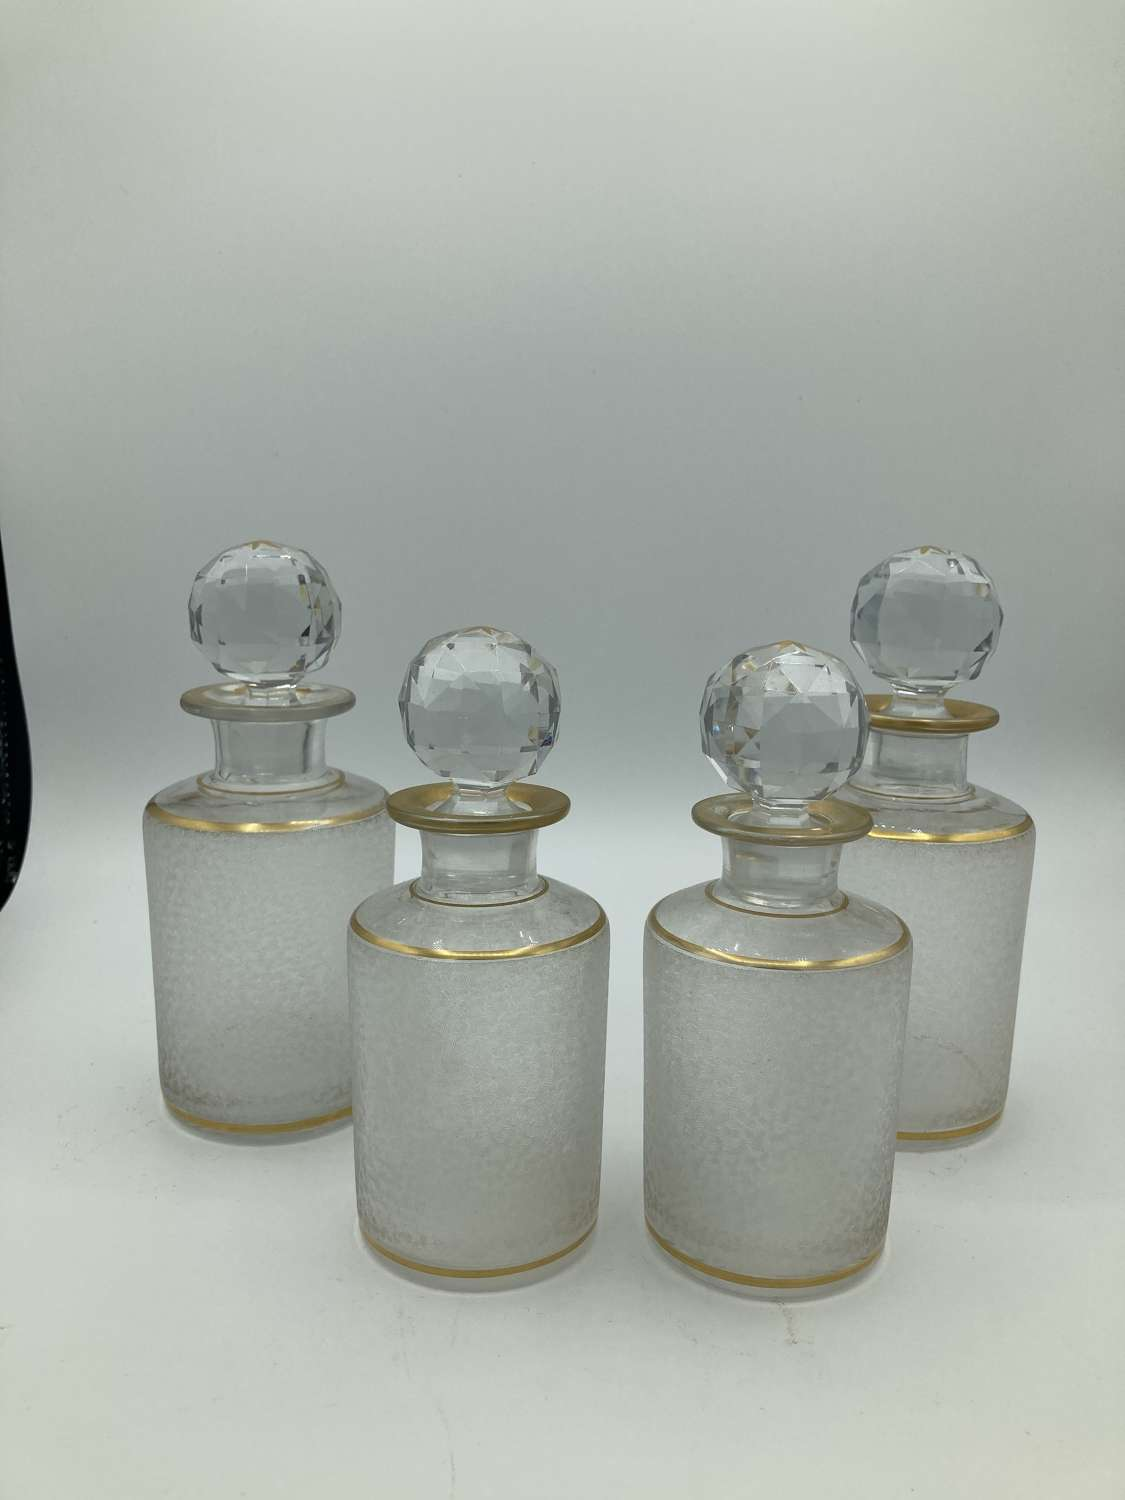 A Set Of 4 French Perfume Bottles